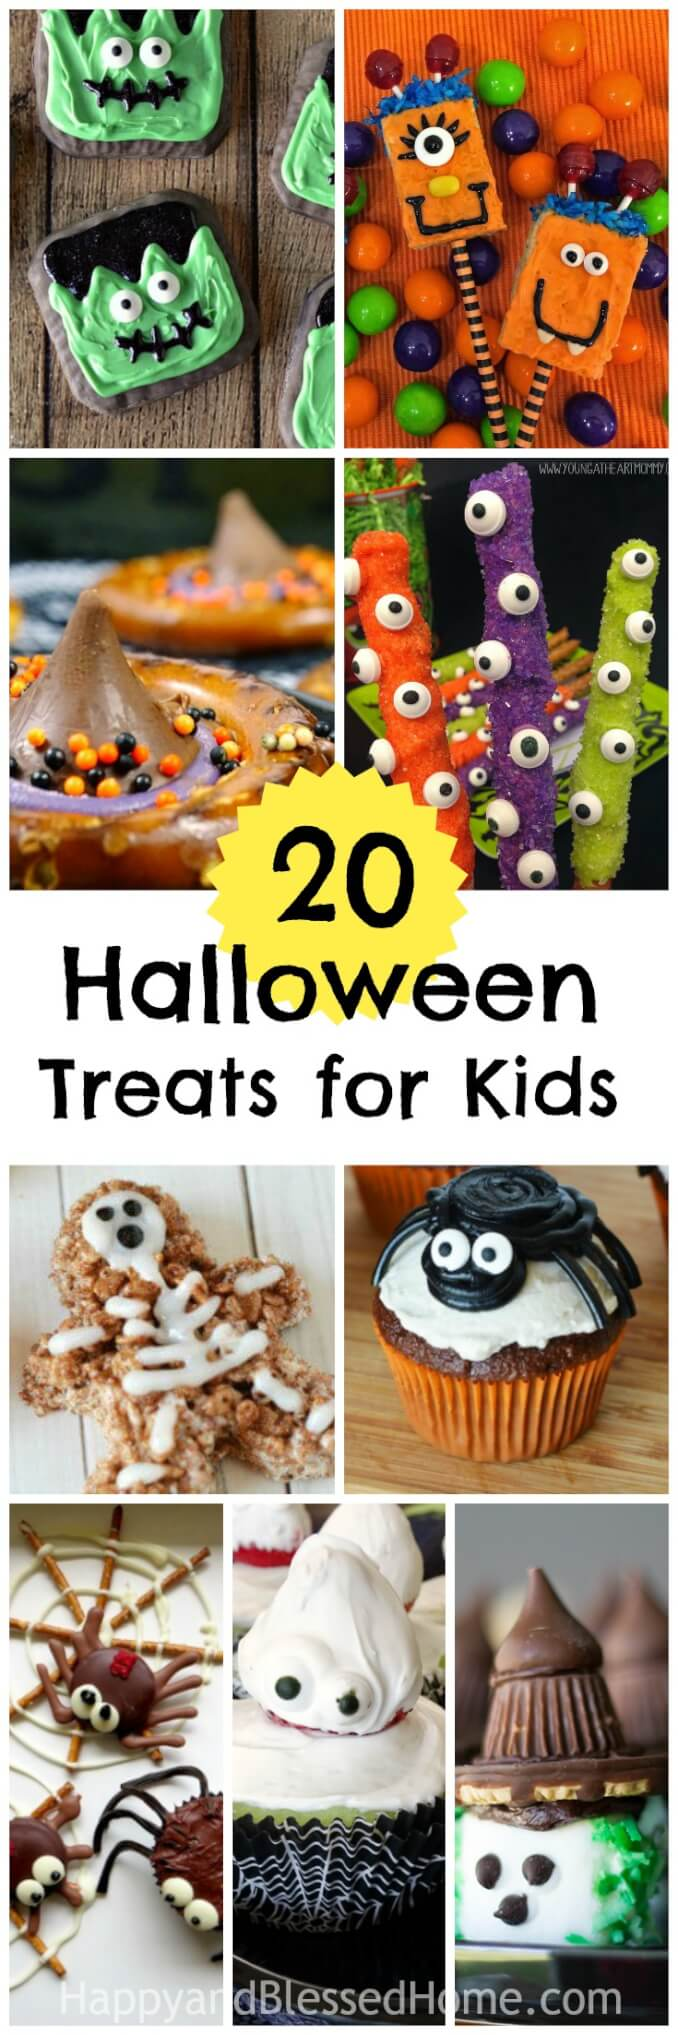 20 Sometimes Spooky Always Sweet Halloween Recipes for Kids - Perfect candies, snacks, and sweet treats for a school party, fall festival, or kids' Halloween Party. Fun and sweet!